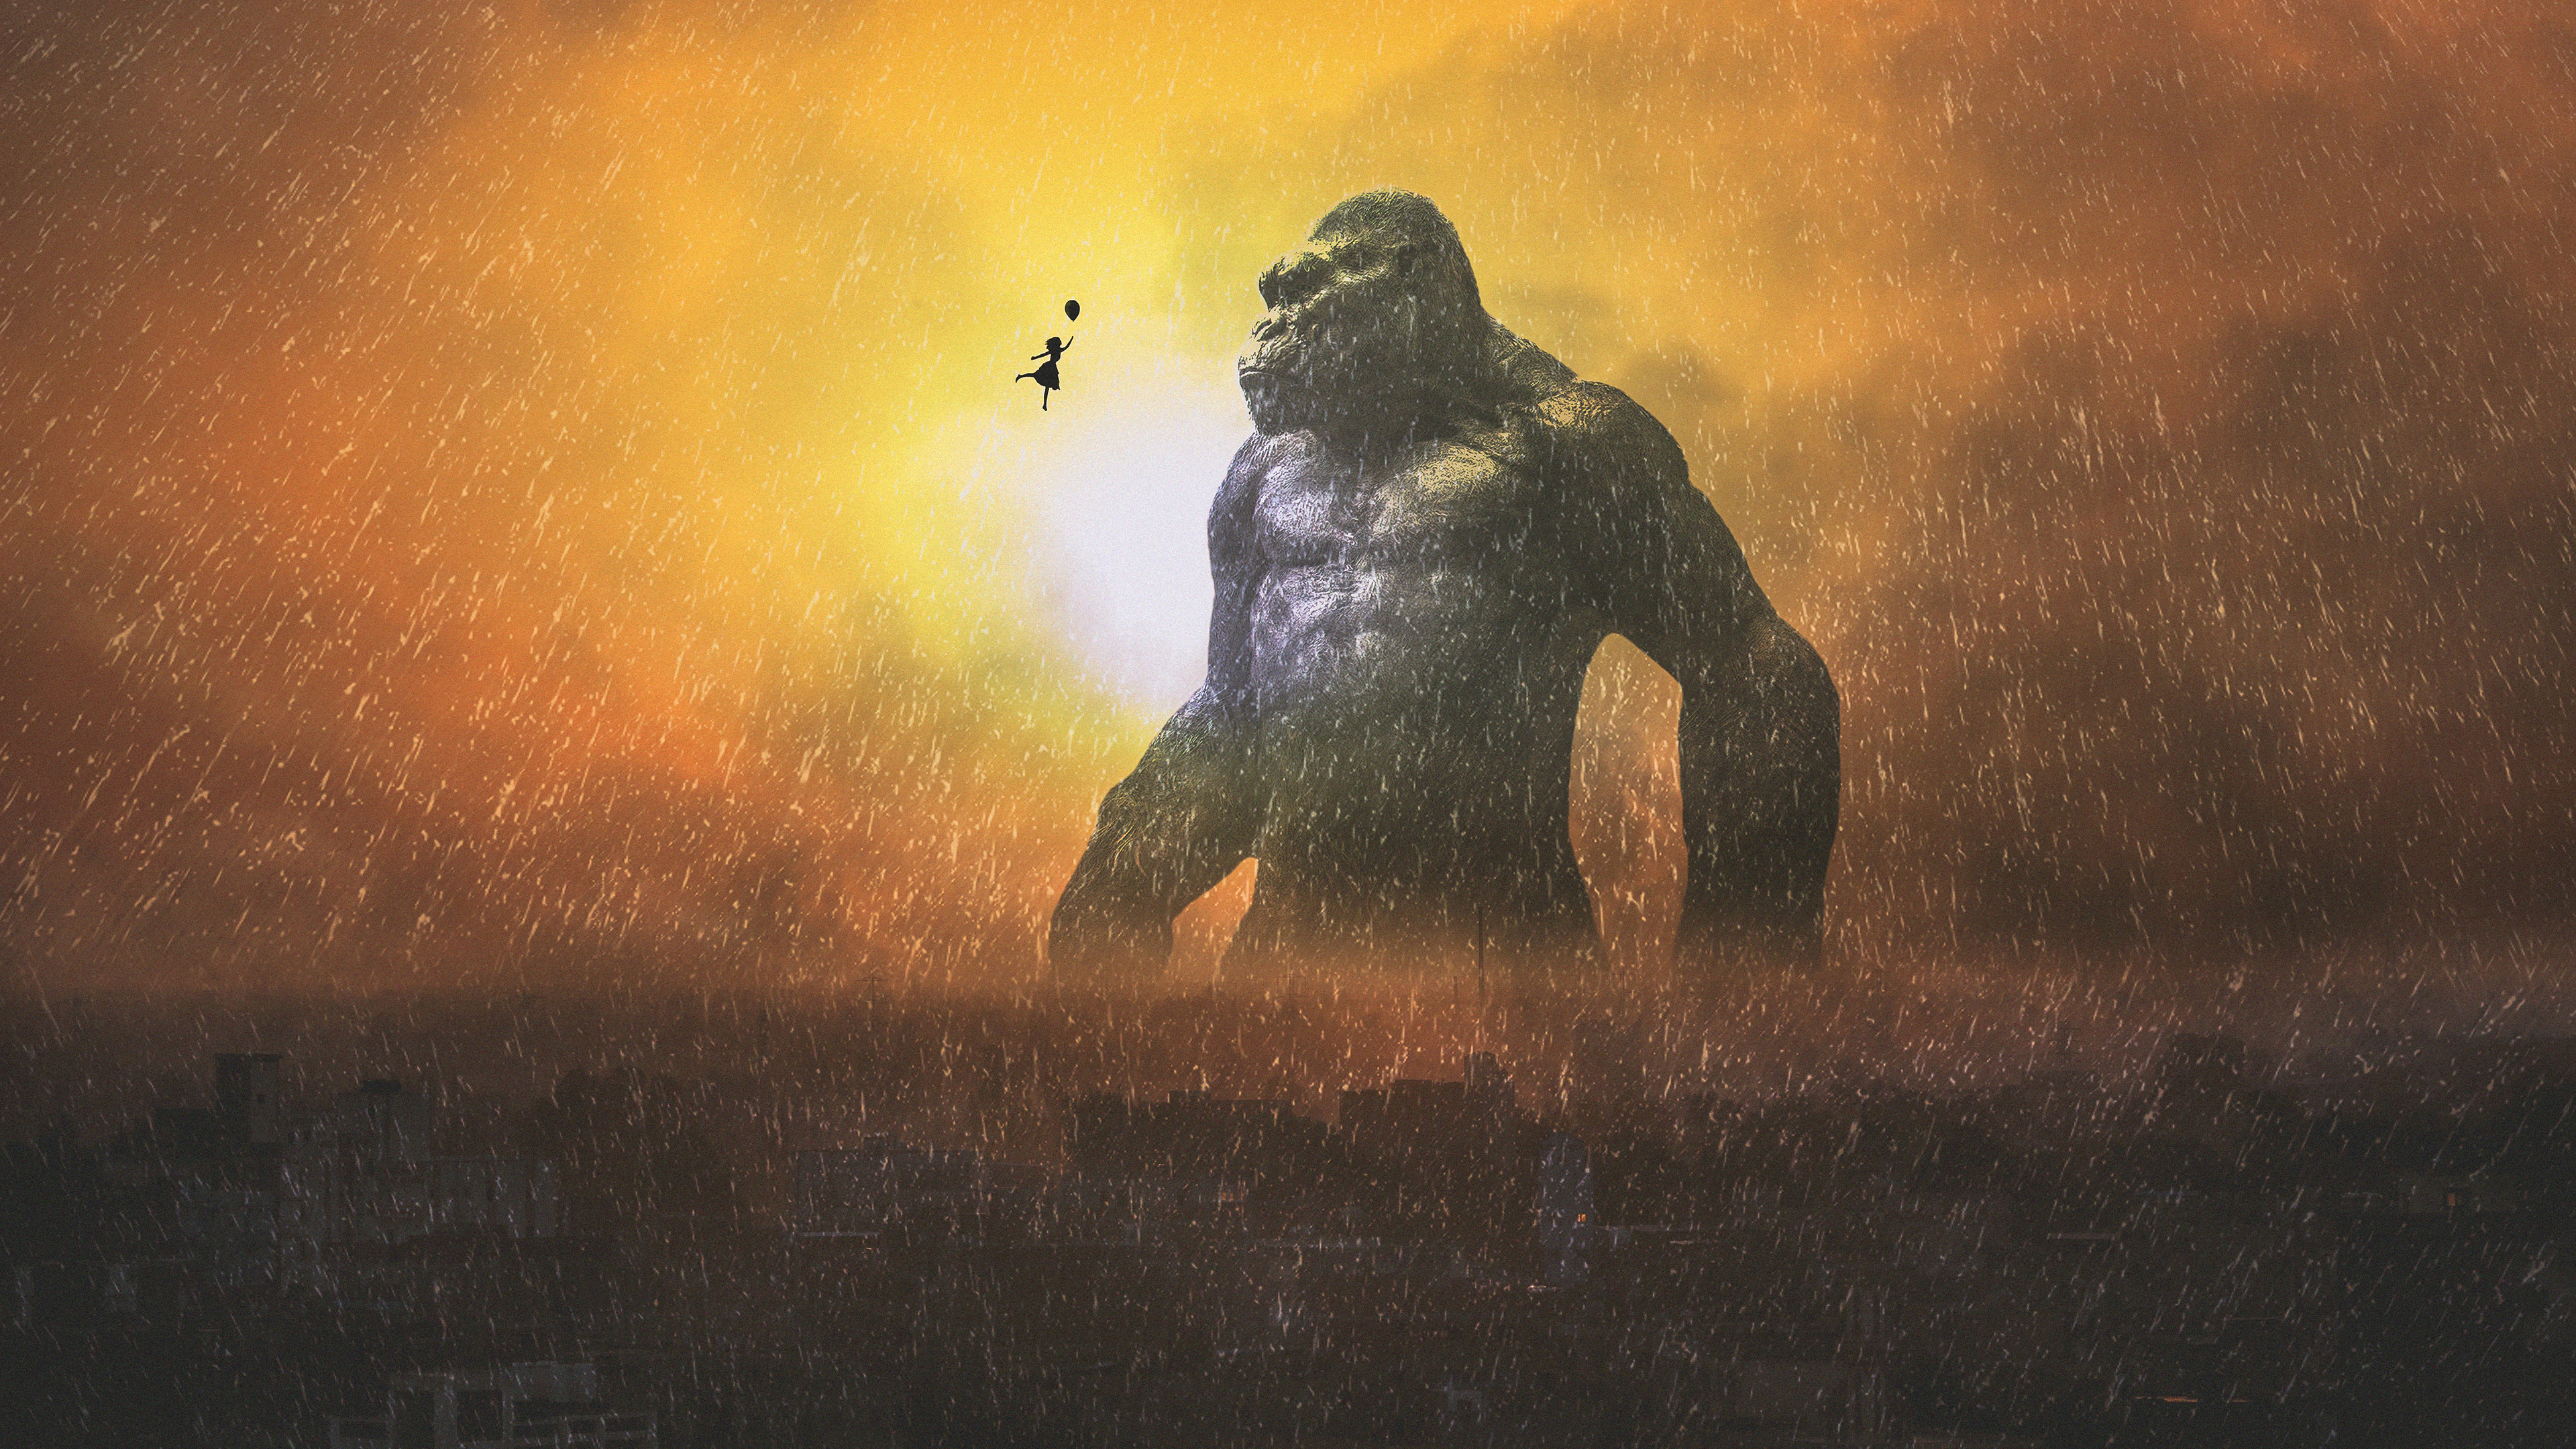 king kong 1565055734 - King Kong - movies wallpapers, king kong wallpapers, hd-wallpapers, behance wallpapers, 4k-wallpapers